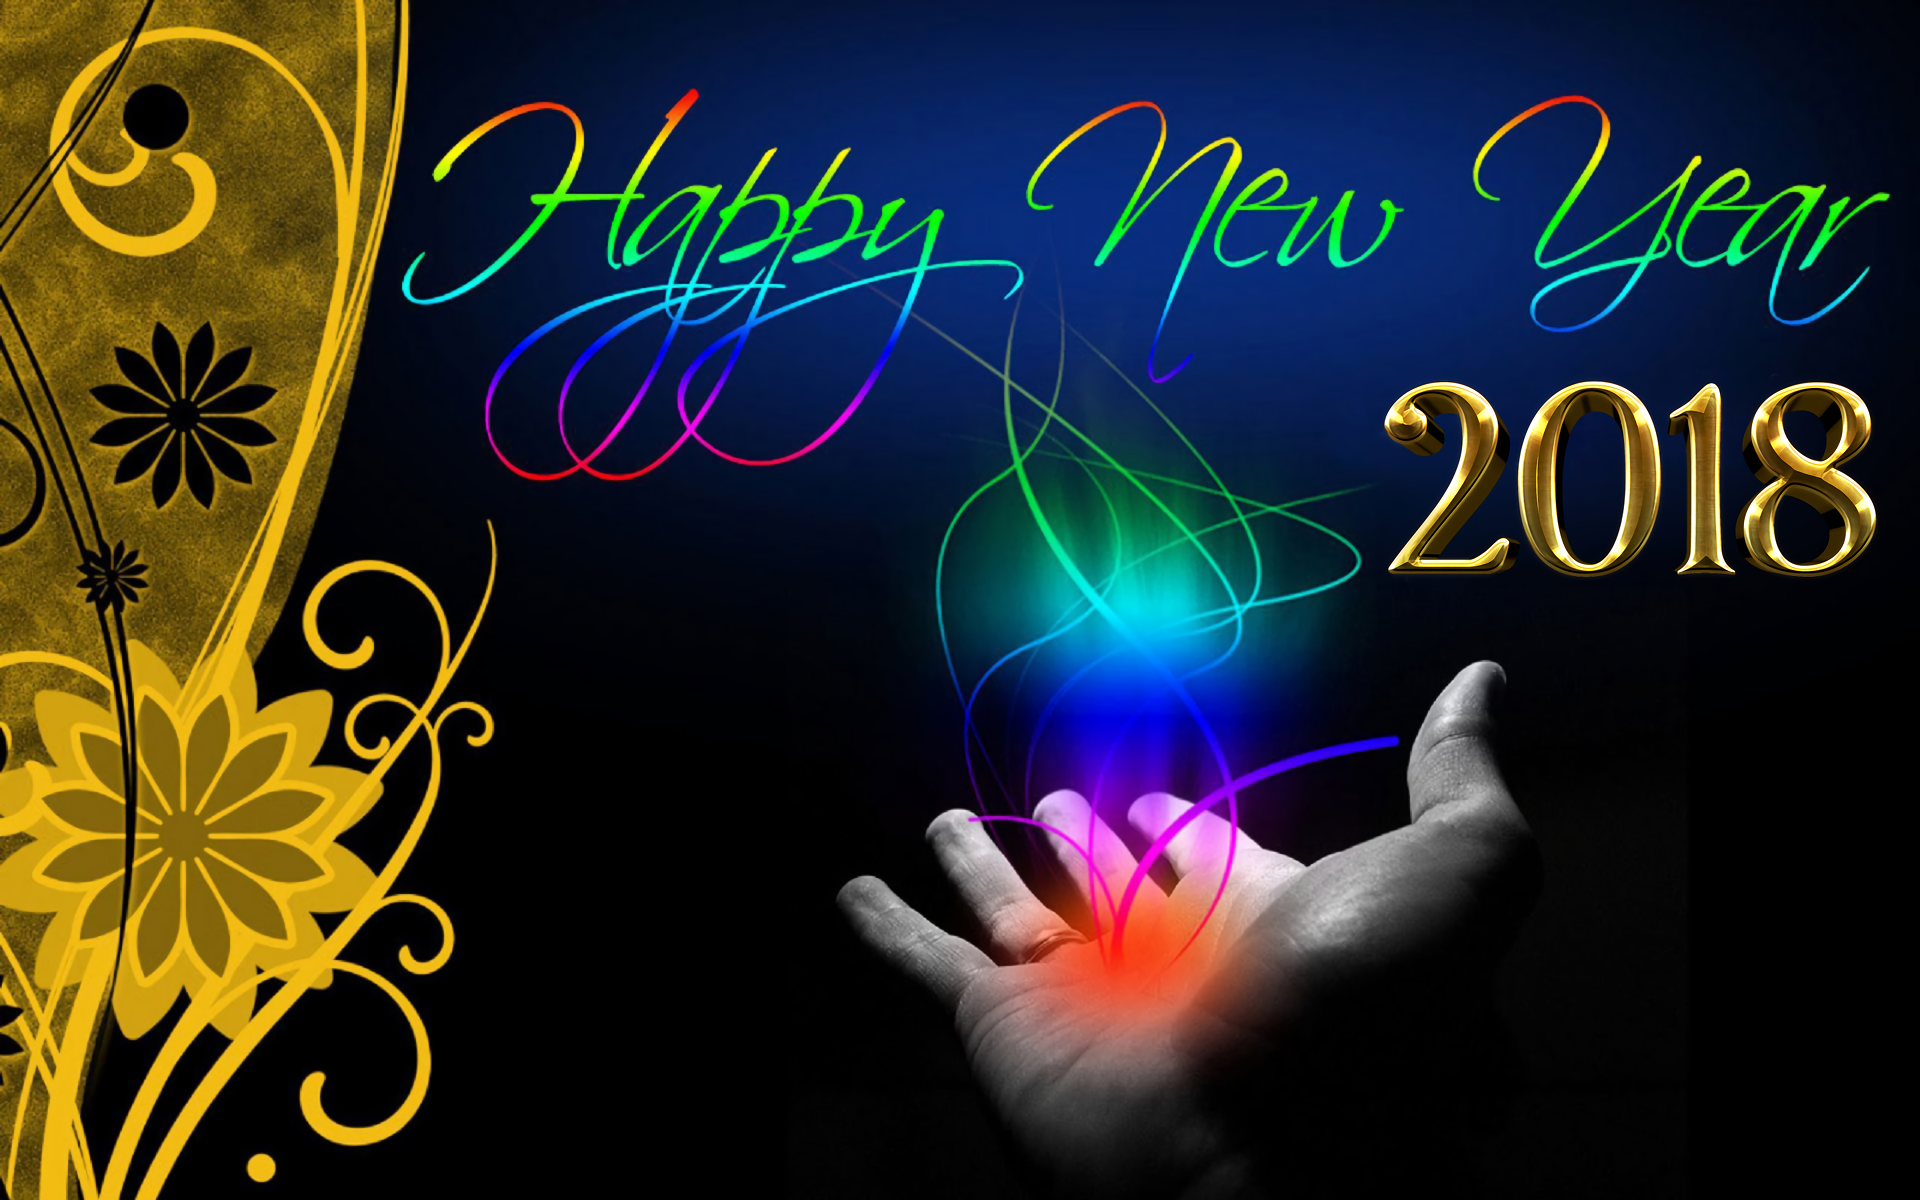 new year 2018 wallpapers id882484